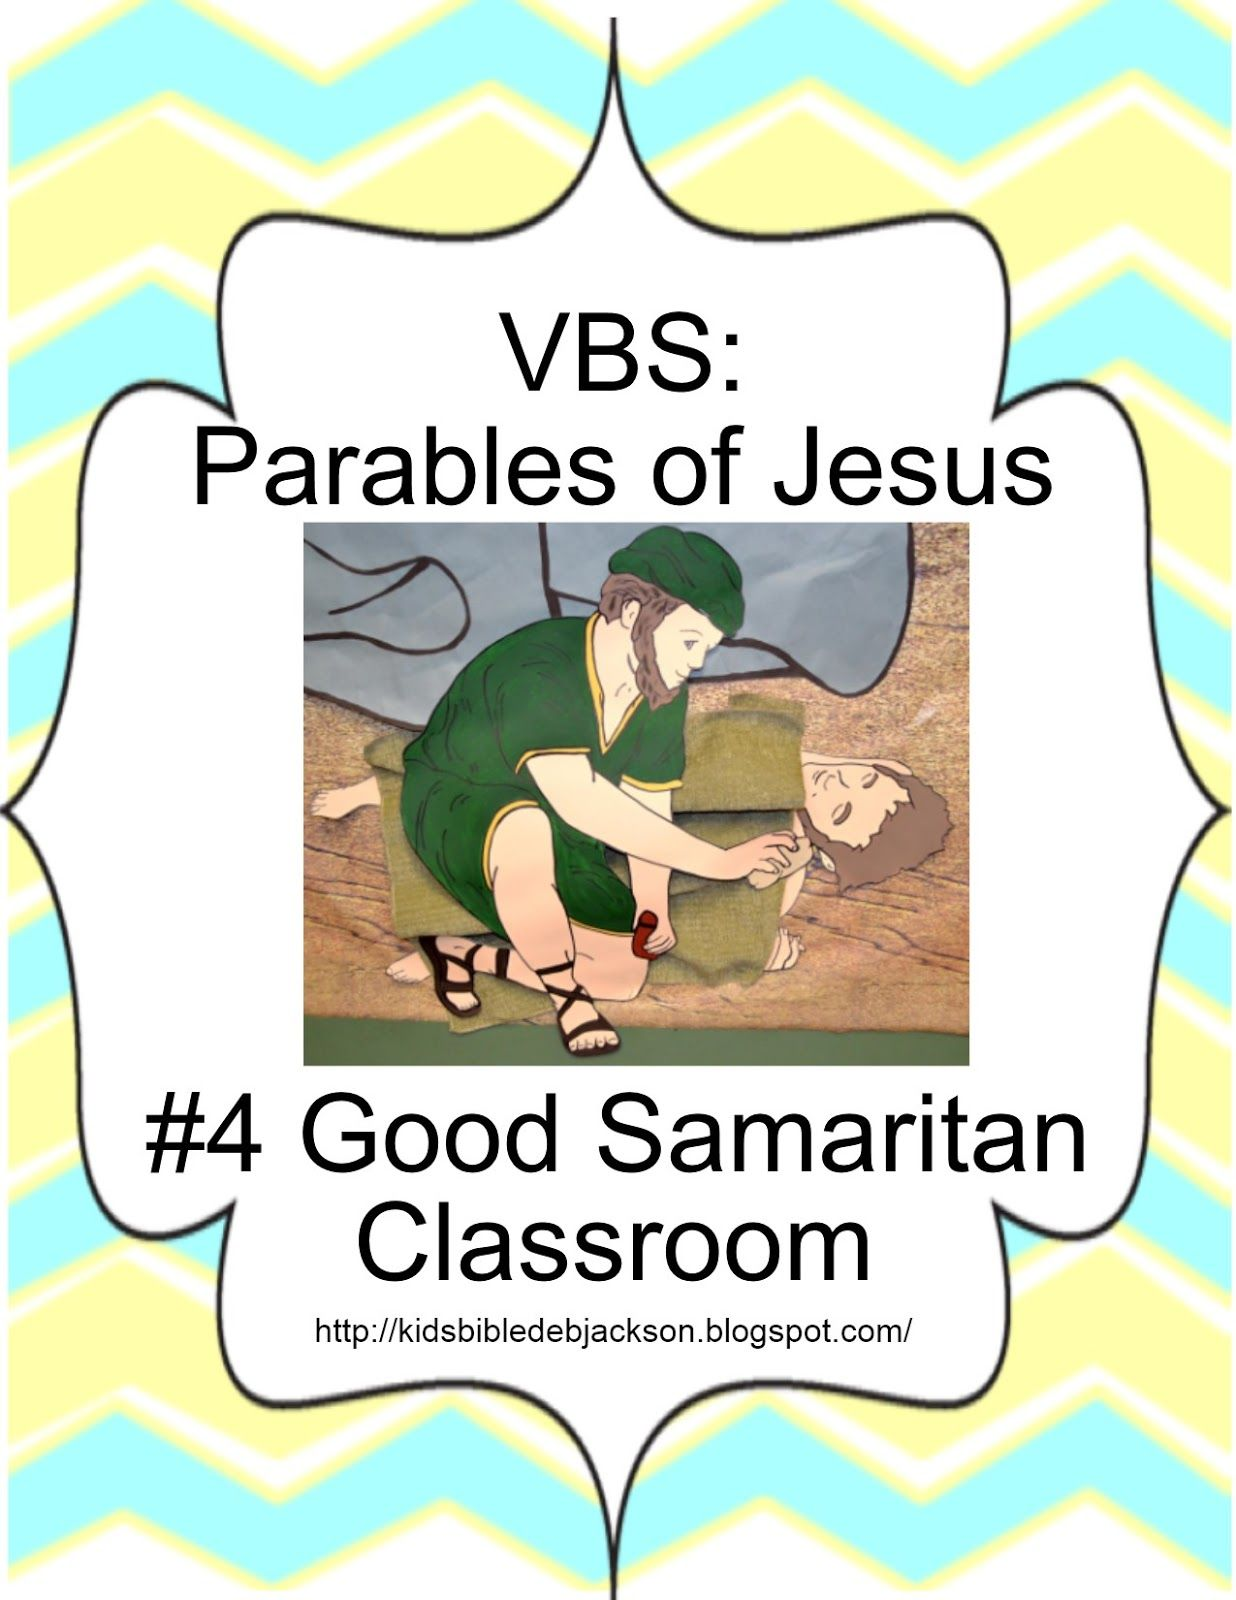 why did jesus use parables to Jesus told stories that come from thing in ordinary life why did jesus use parables jesus told parable to challenge his listeners to use their imaginations, emotions, and mind to figure out the truth he wants to teach.